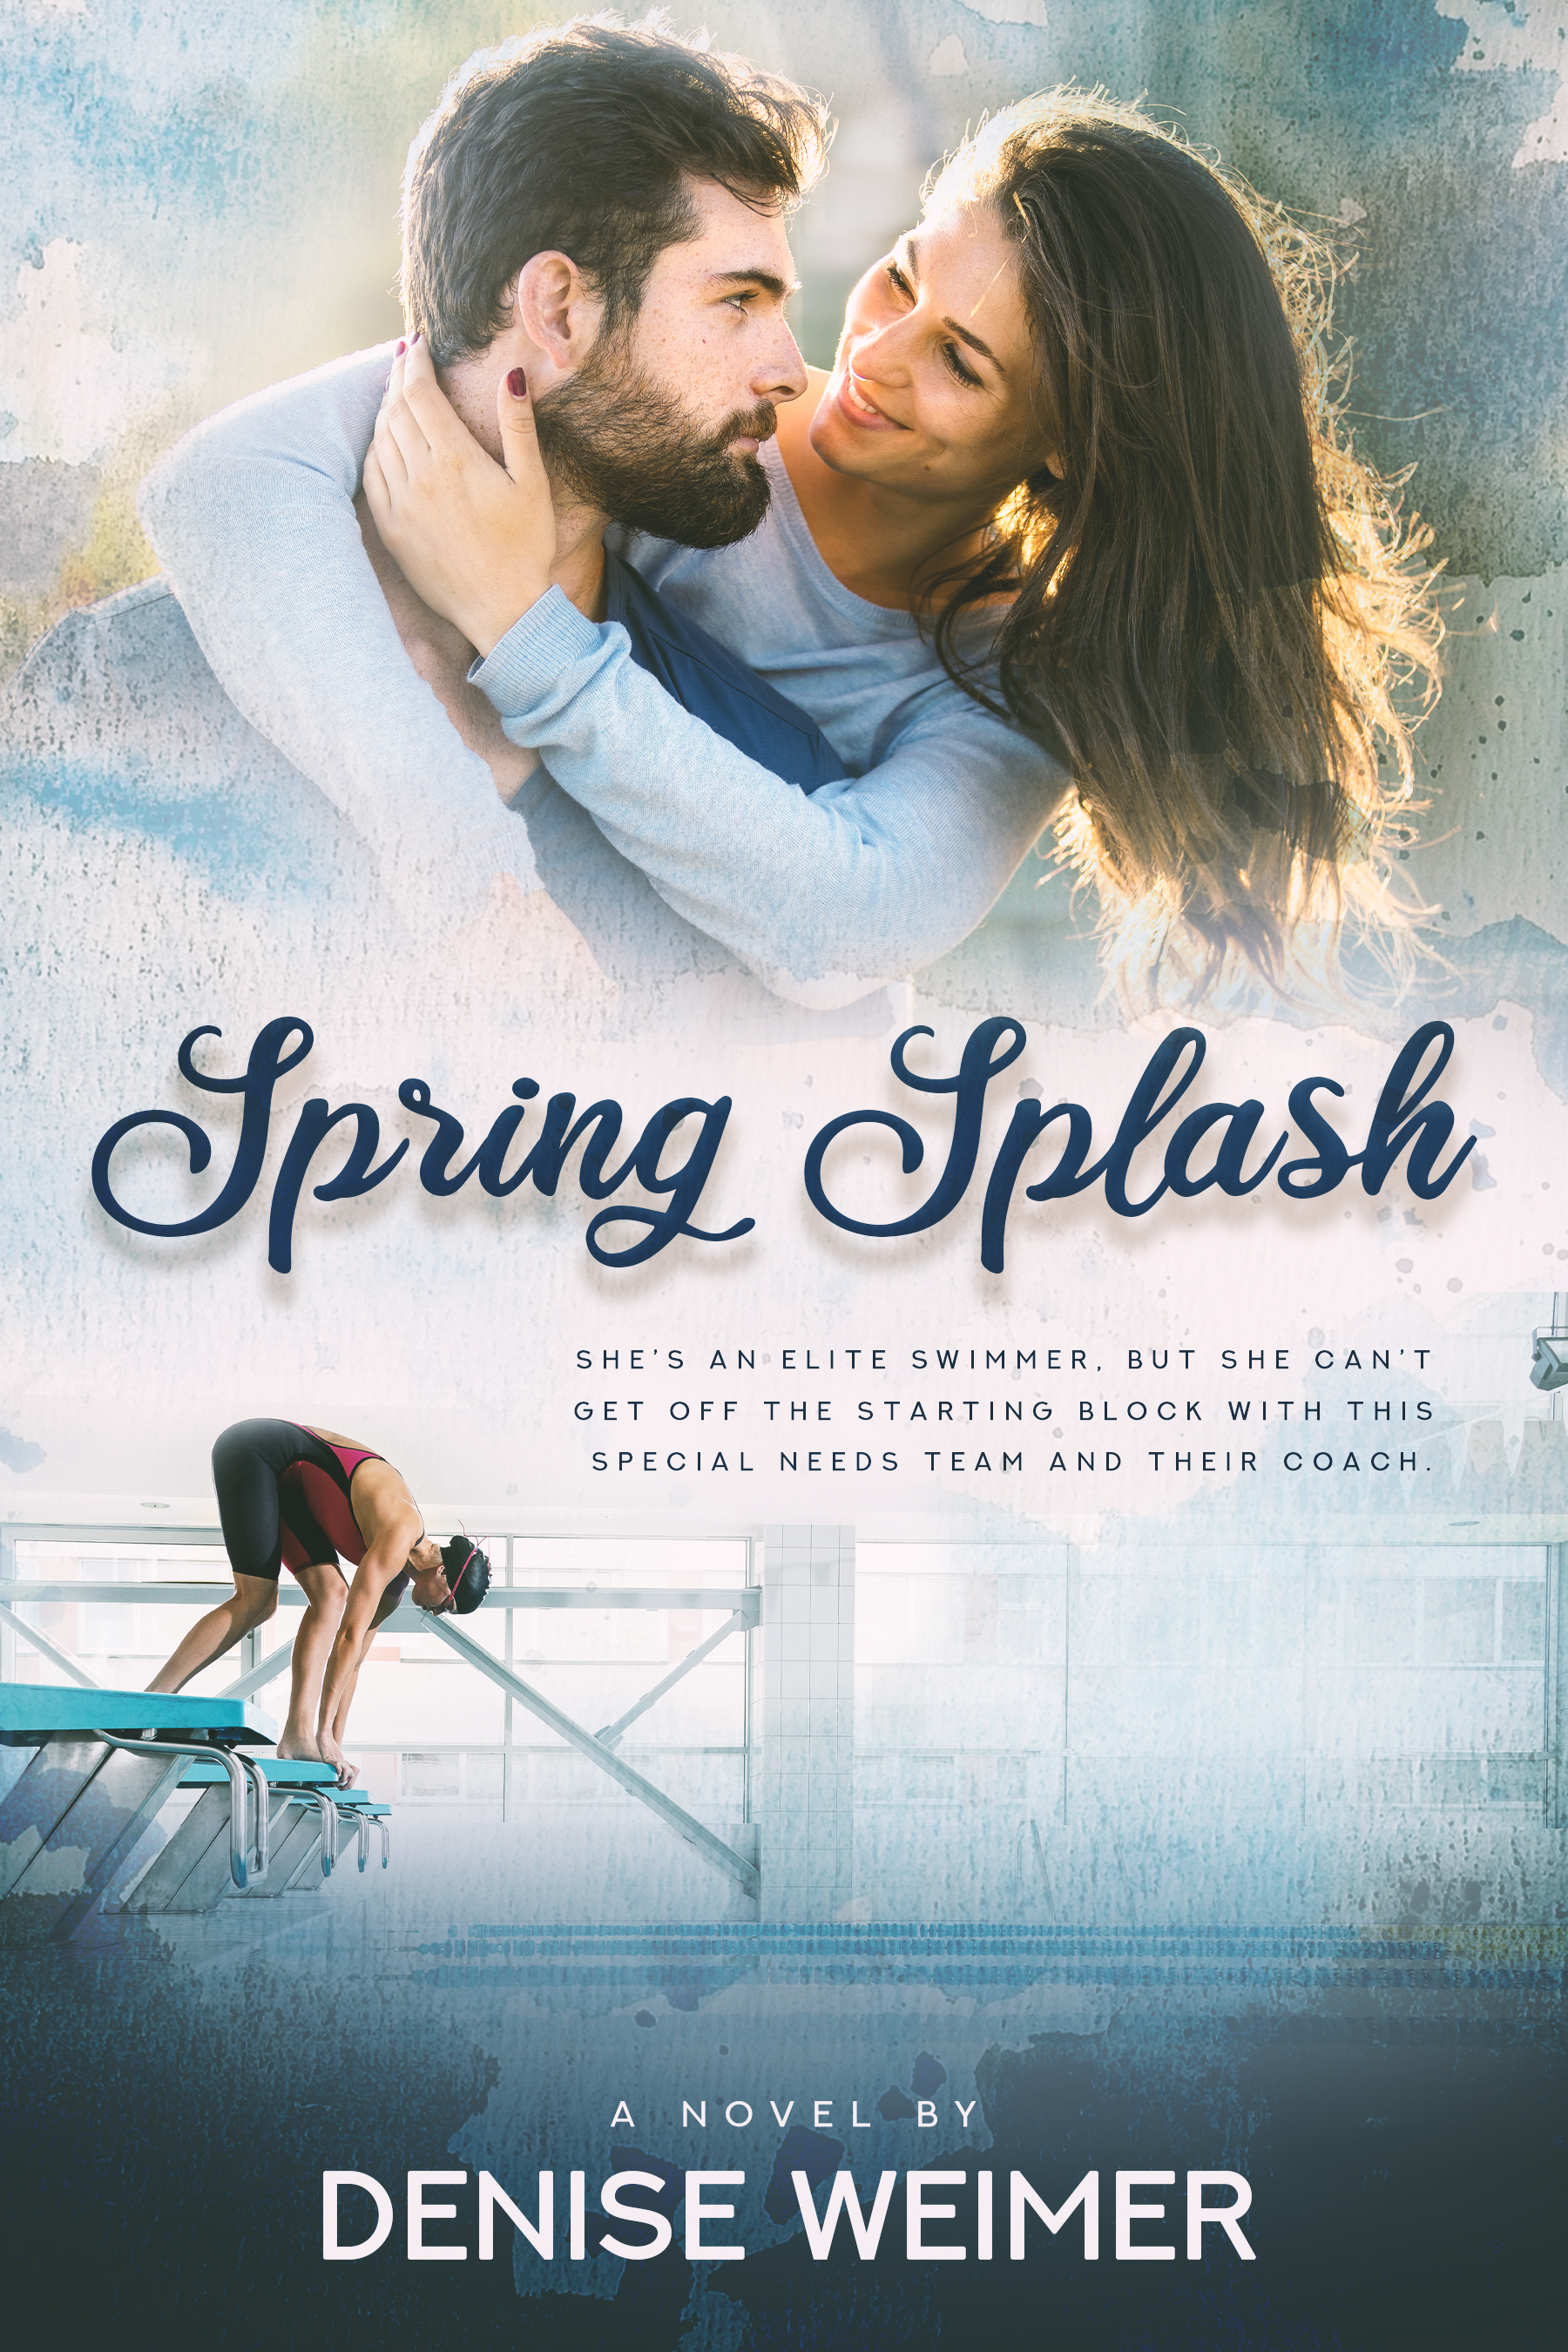 Spring Splash by Denise Weimer